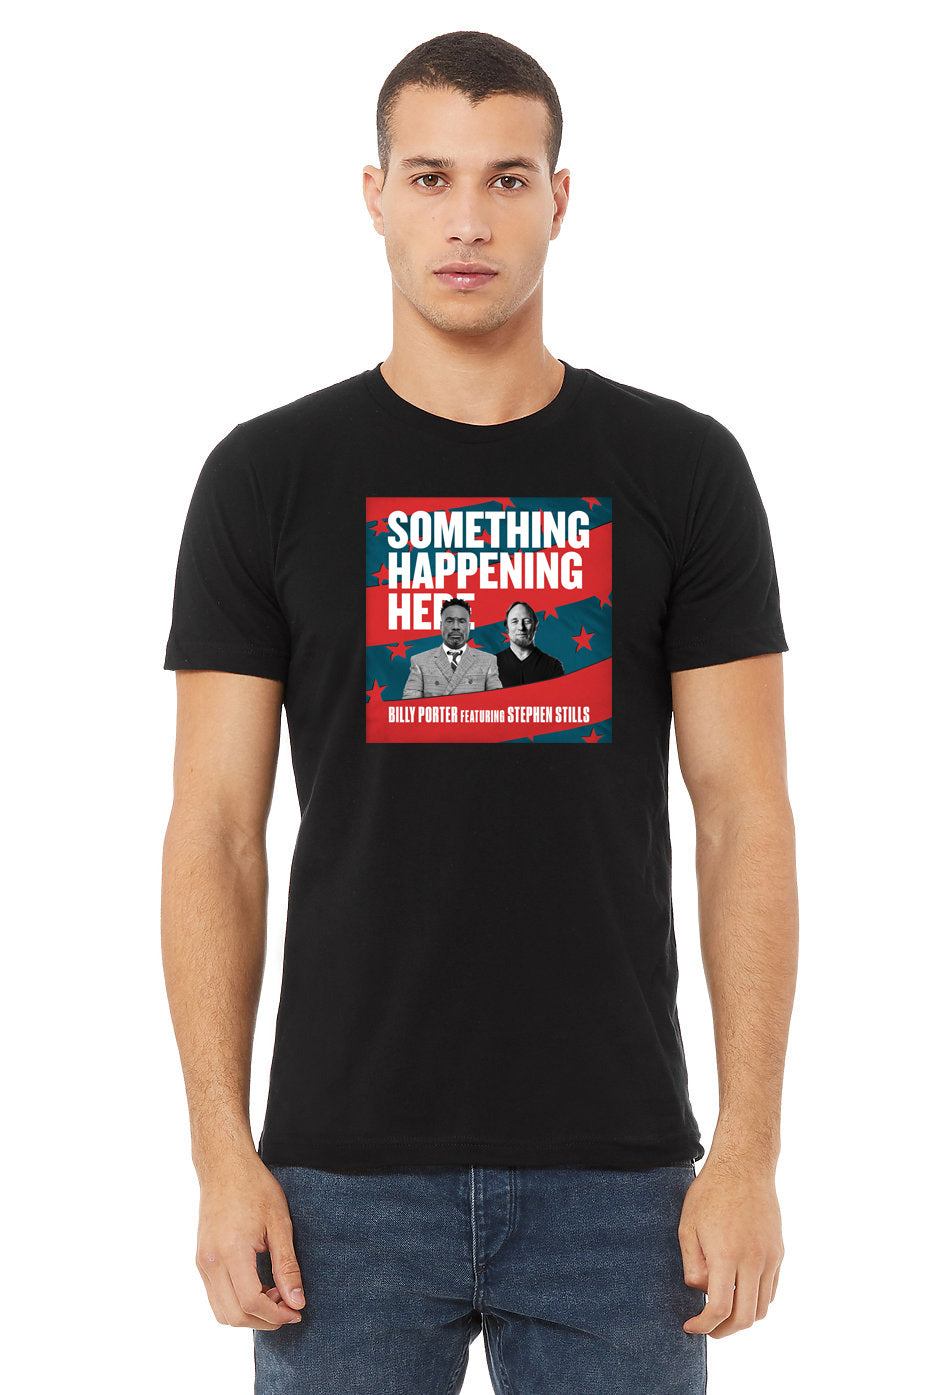 The Billy Porter Collection - Something Happening Single Art T-Shirt